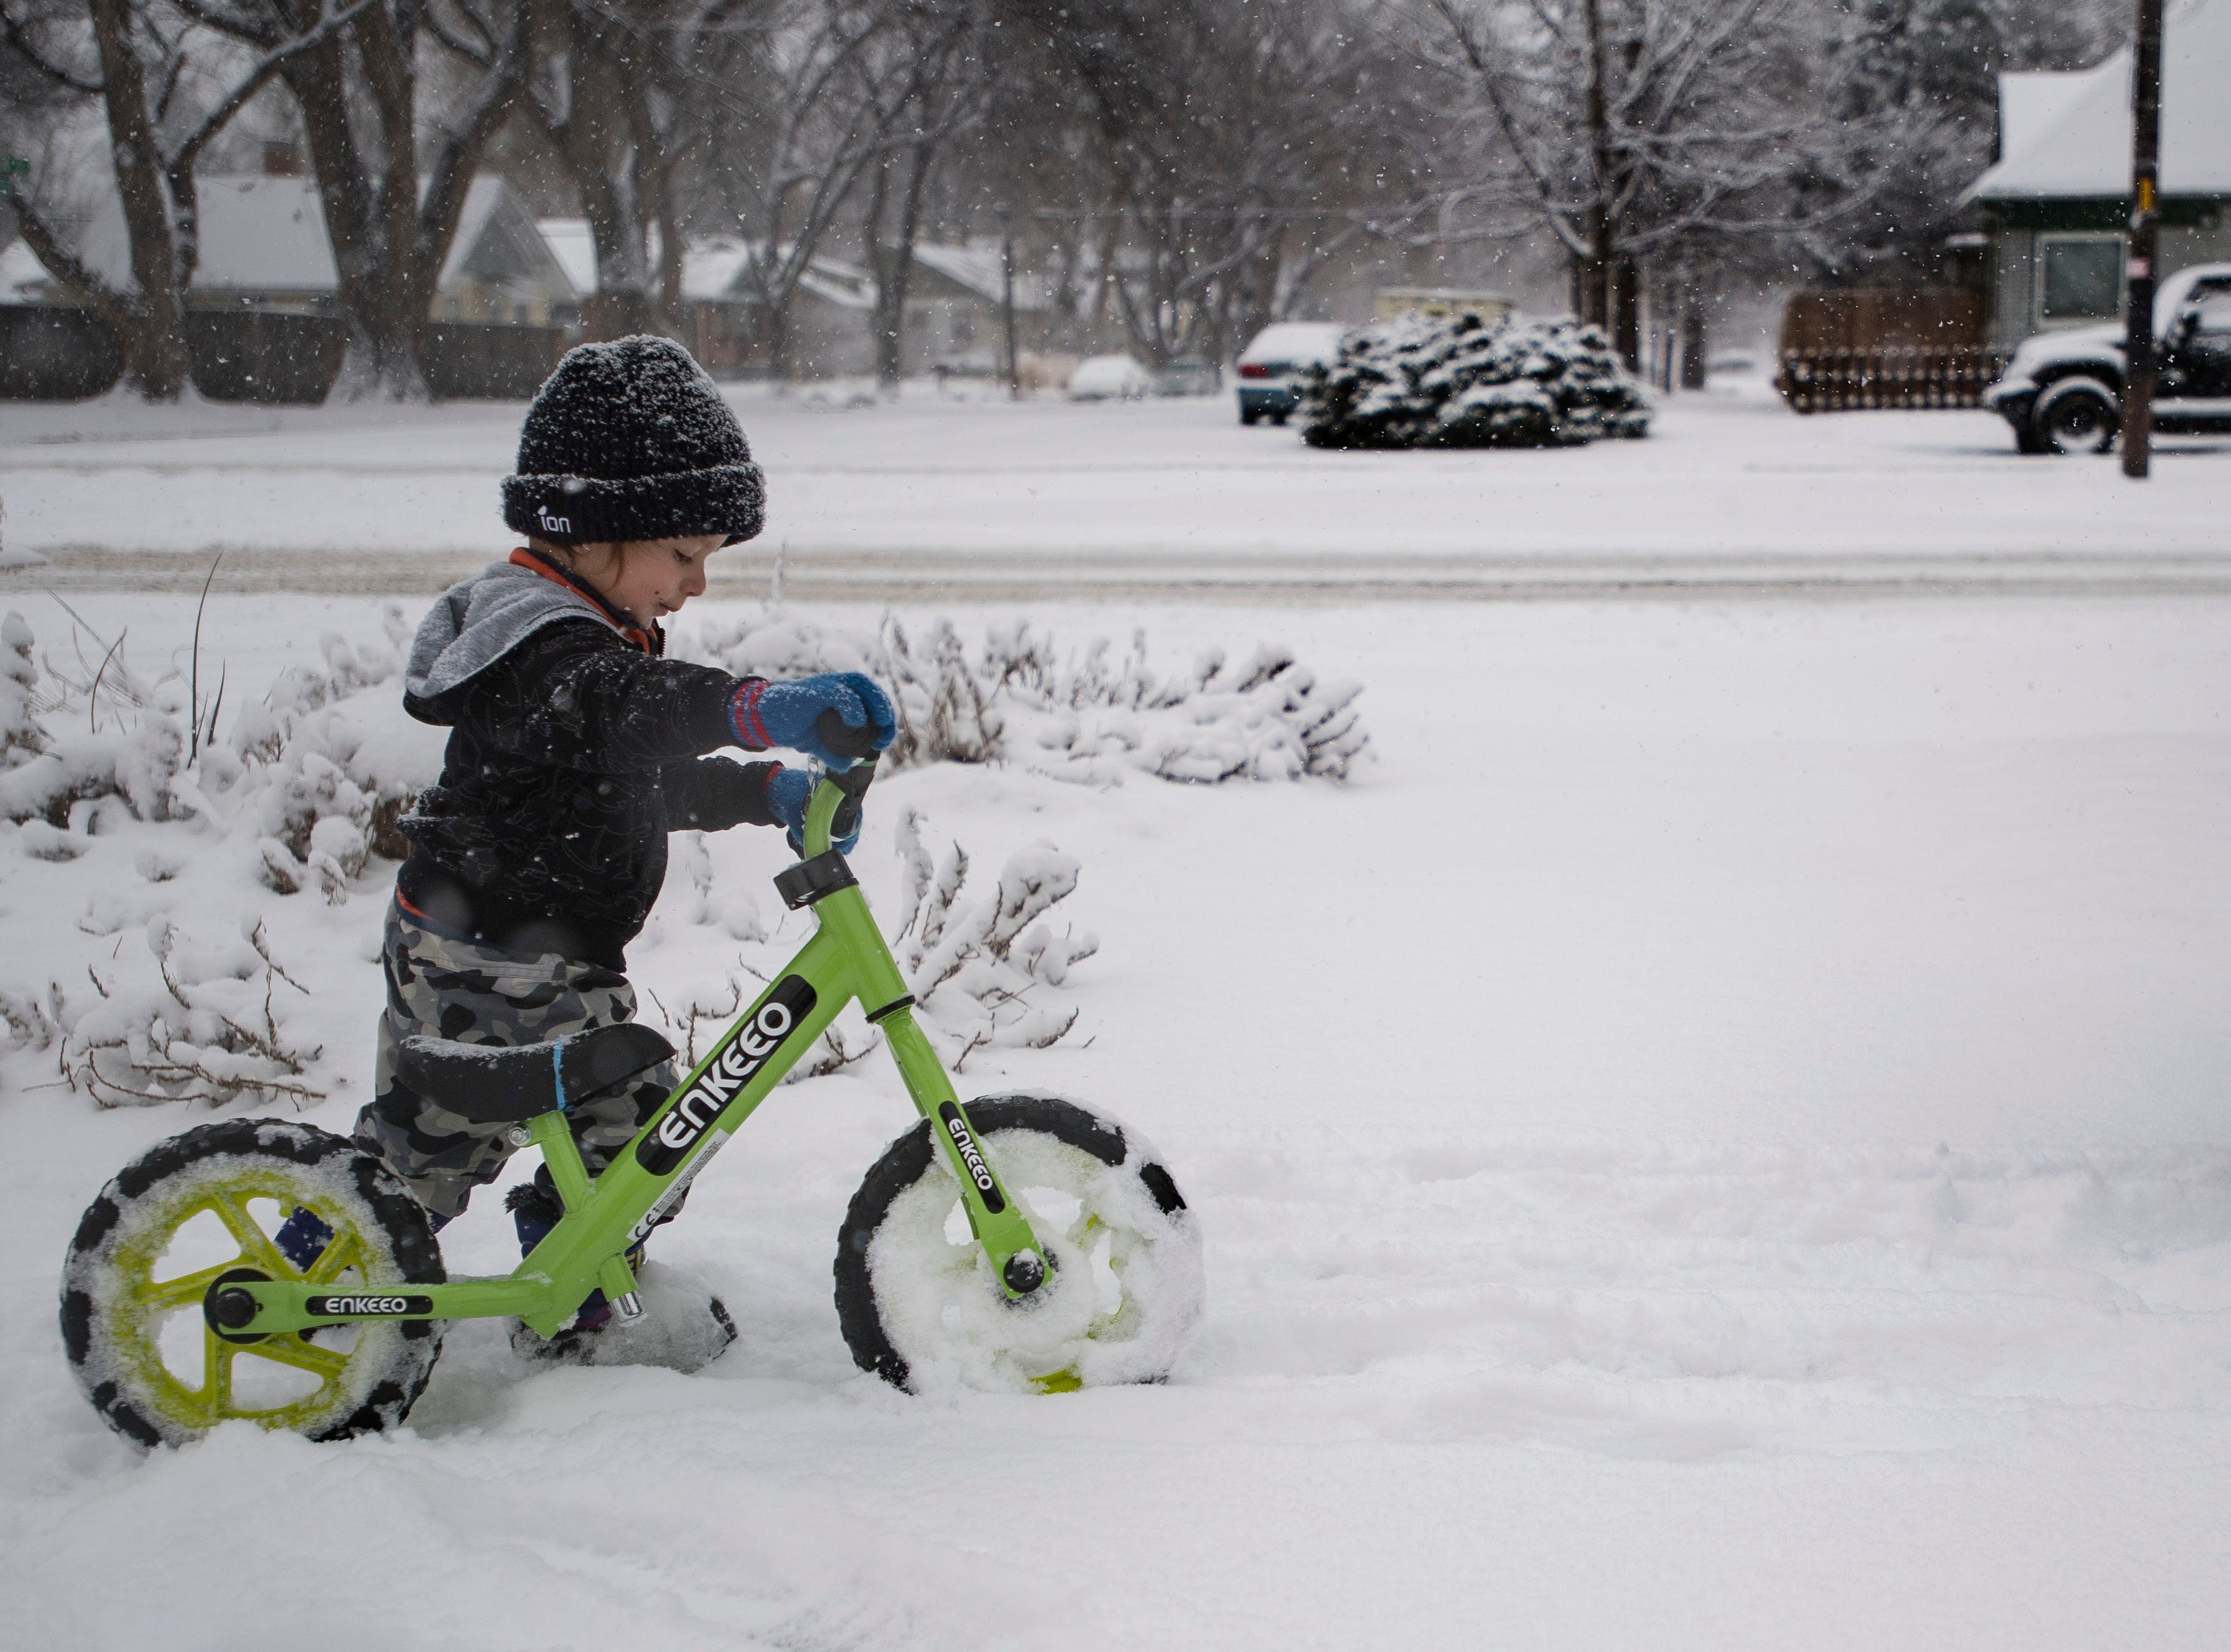 Ren Koning, 2, walks the bike that he got from his grandmother for Christmas through the snow with Reisha Koning on Wednesday, Feb. 6, 2019, in Fort Collins, Colo.